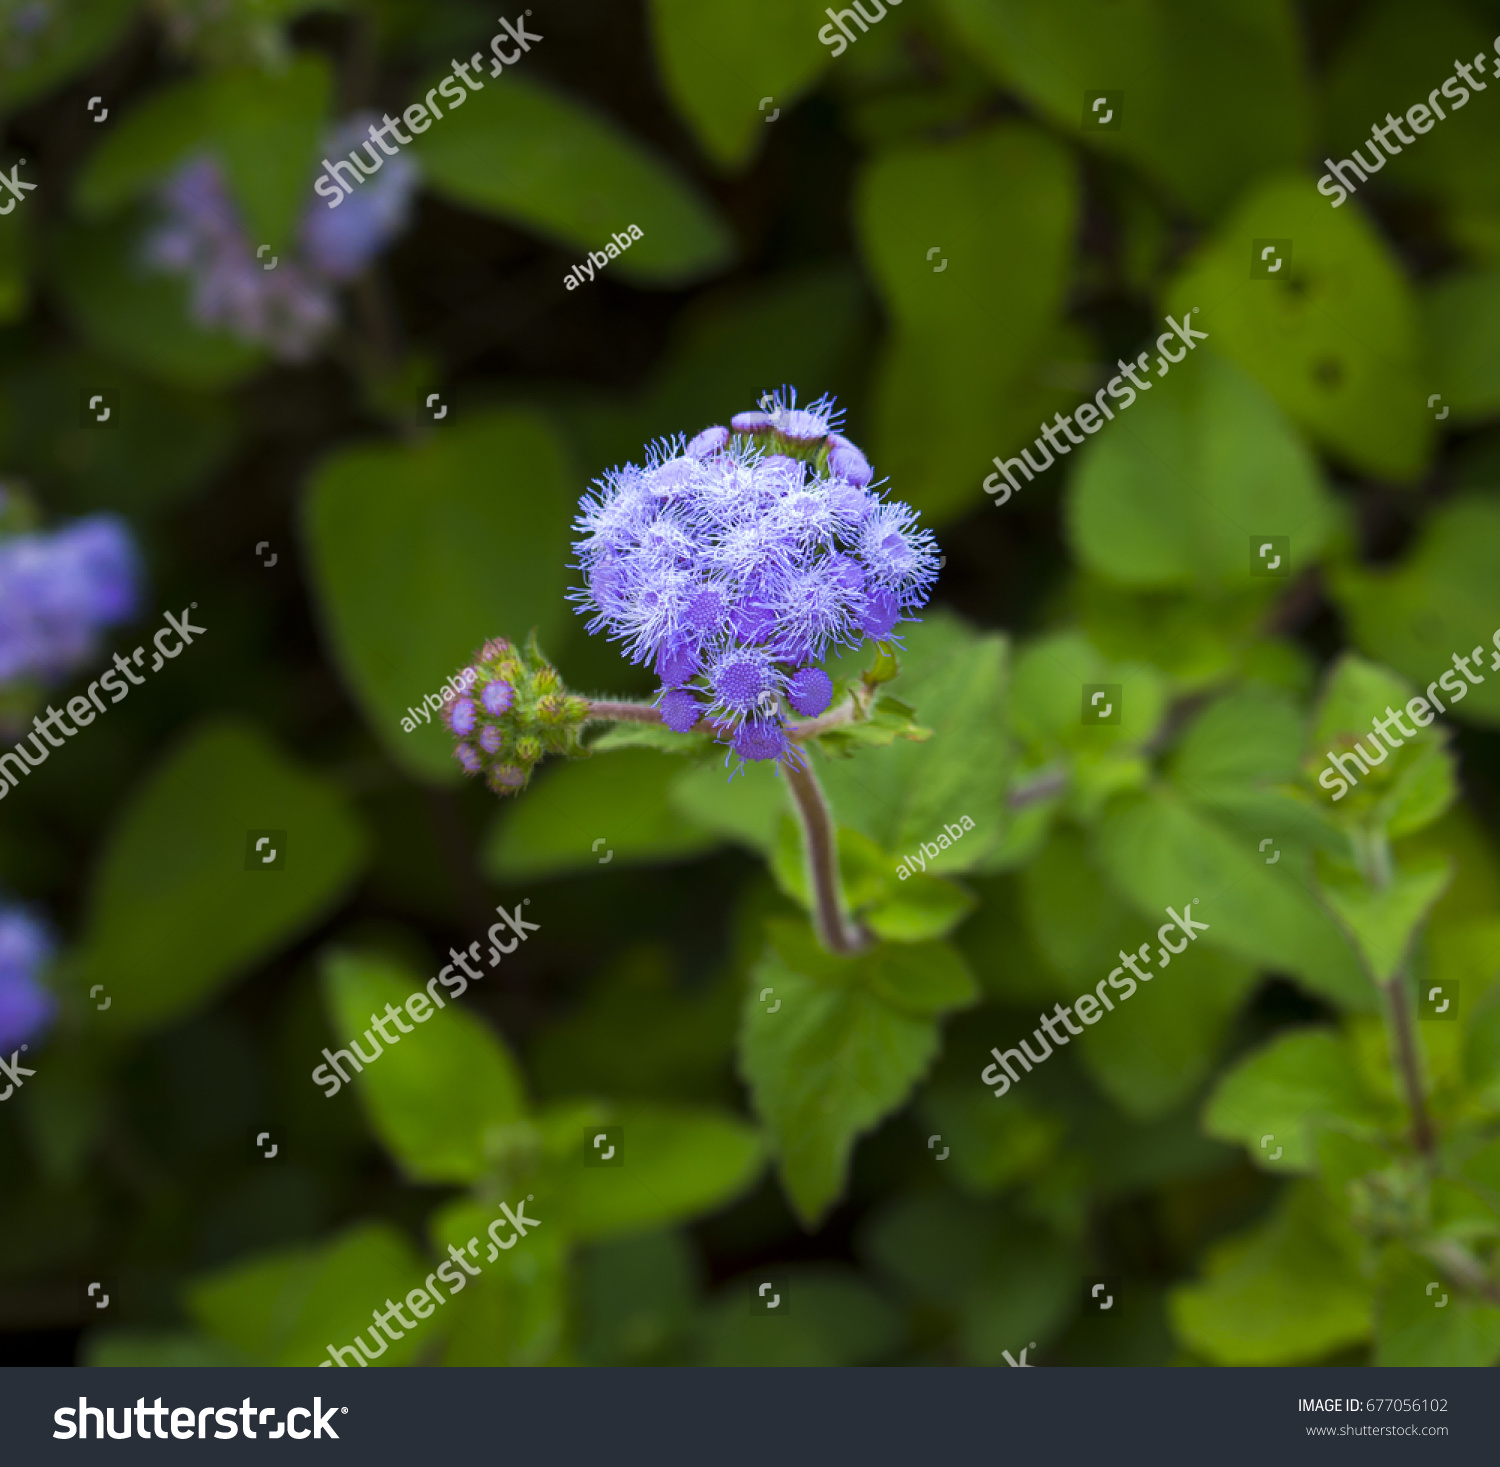 Ethereal misty powder blue flowers of perennial ageratum id 677056102 izmirmasajfo